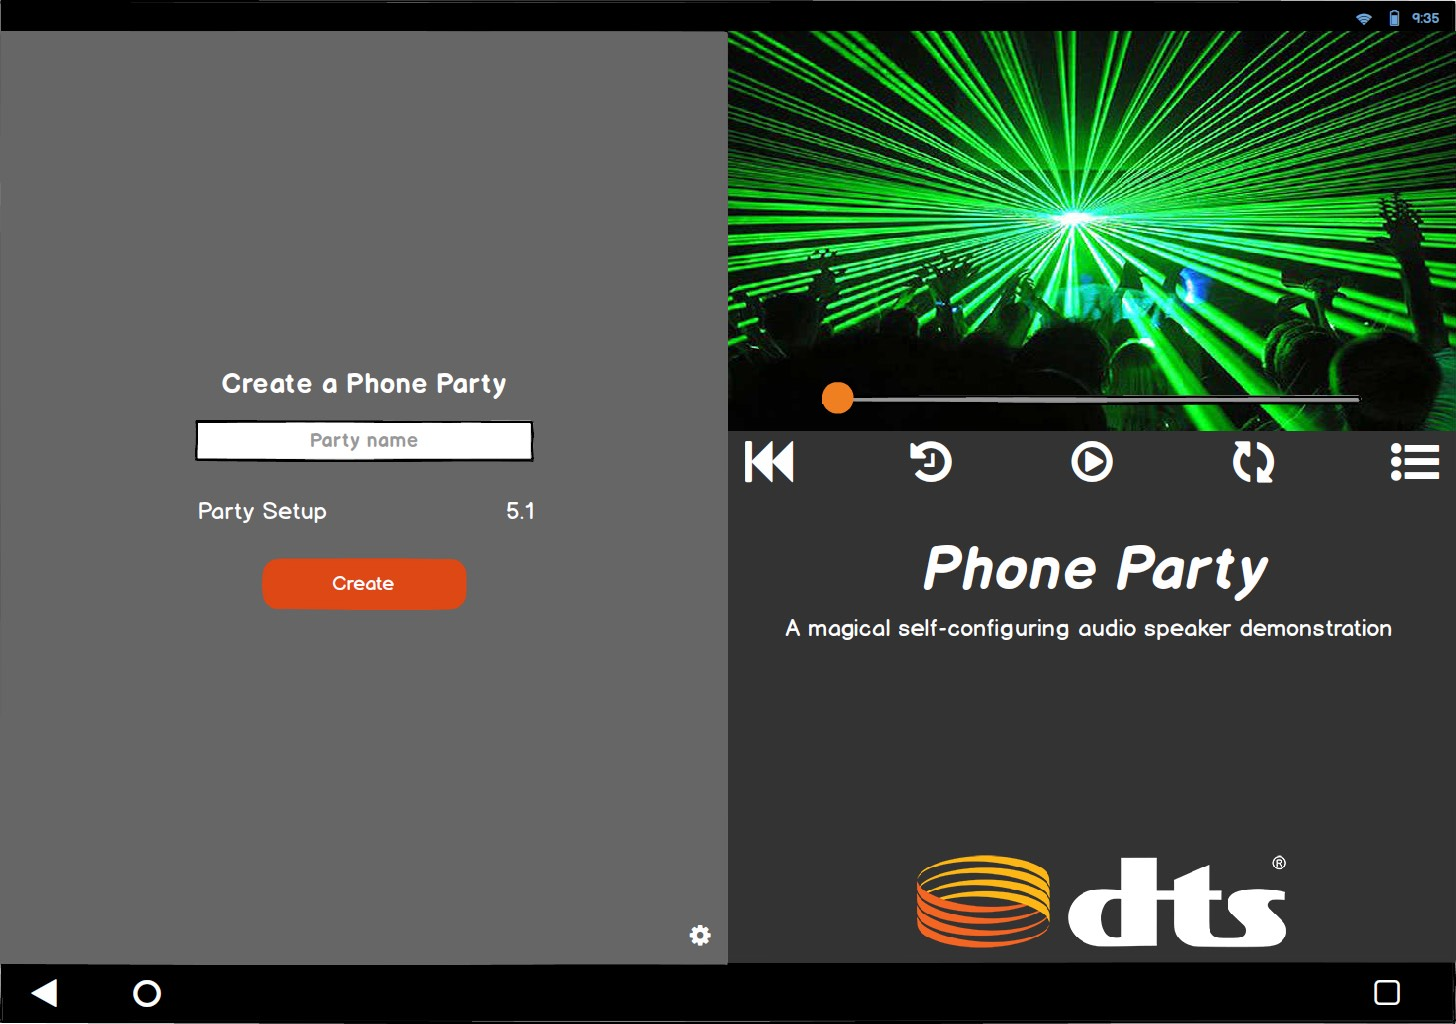 Tablet App - Create a Phone Party: Wireframe